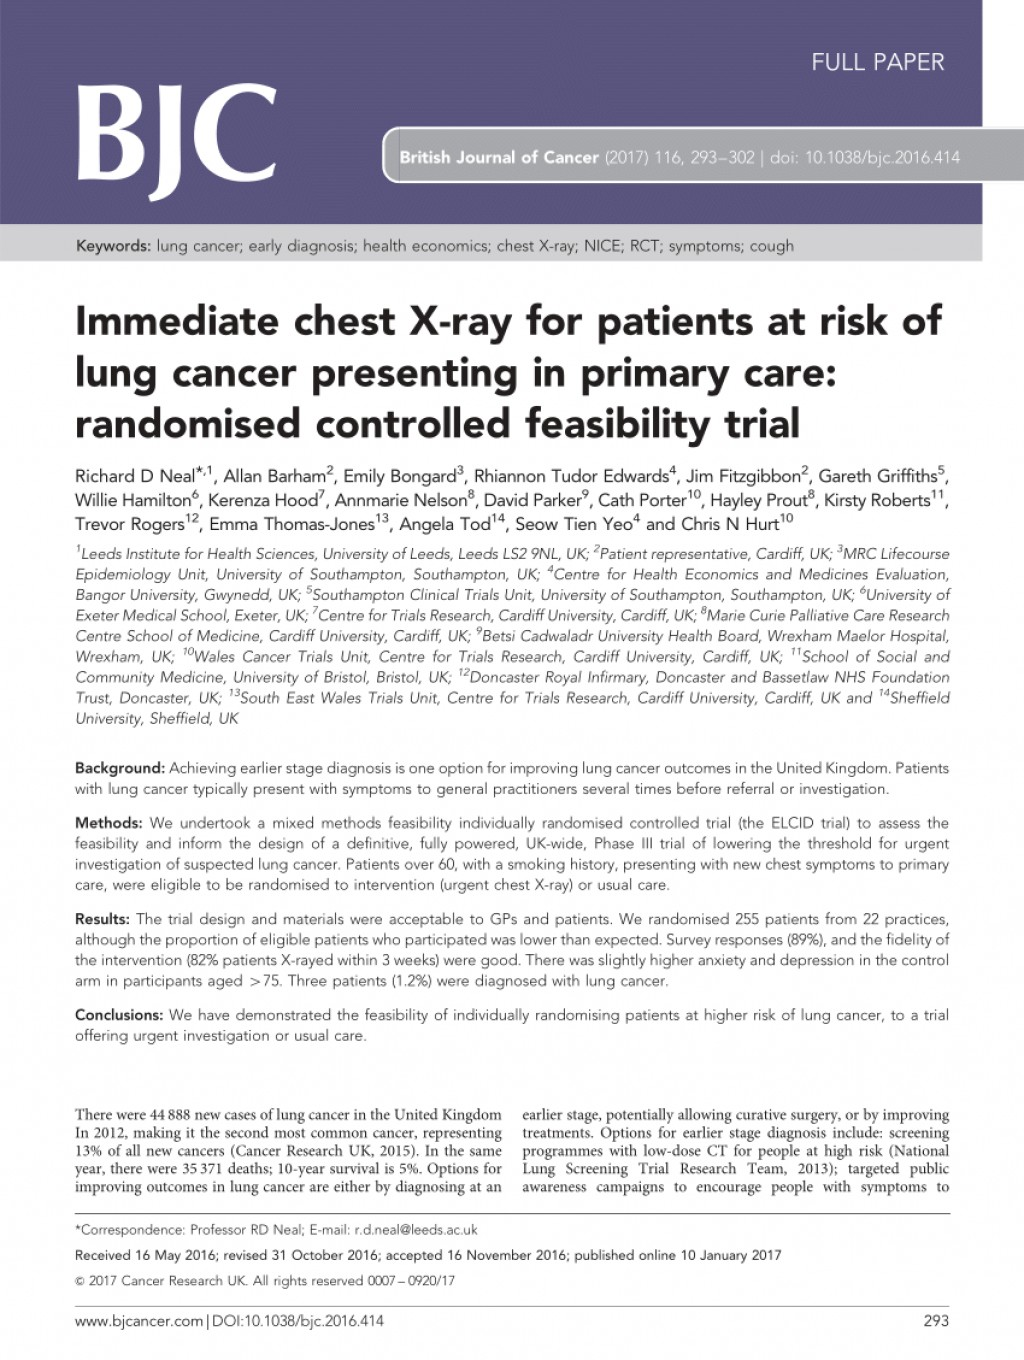 010 Lung Cancer Research Paper Conclusion Unusual Large